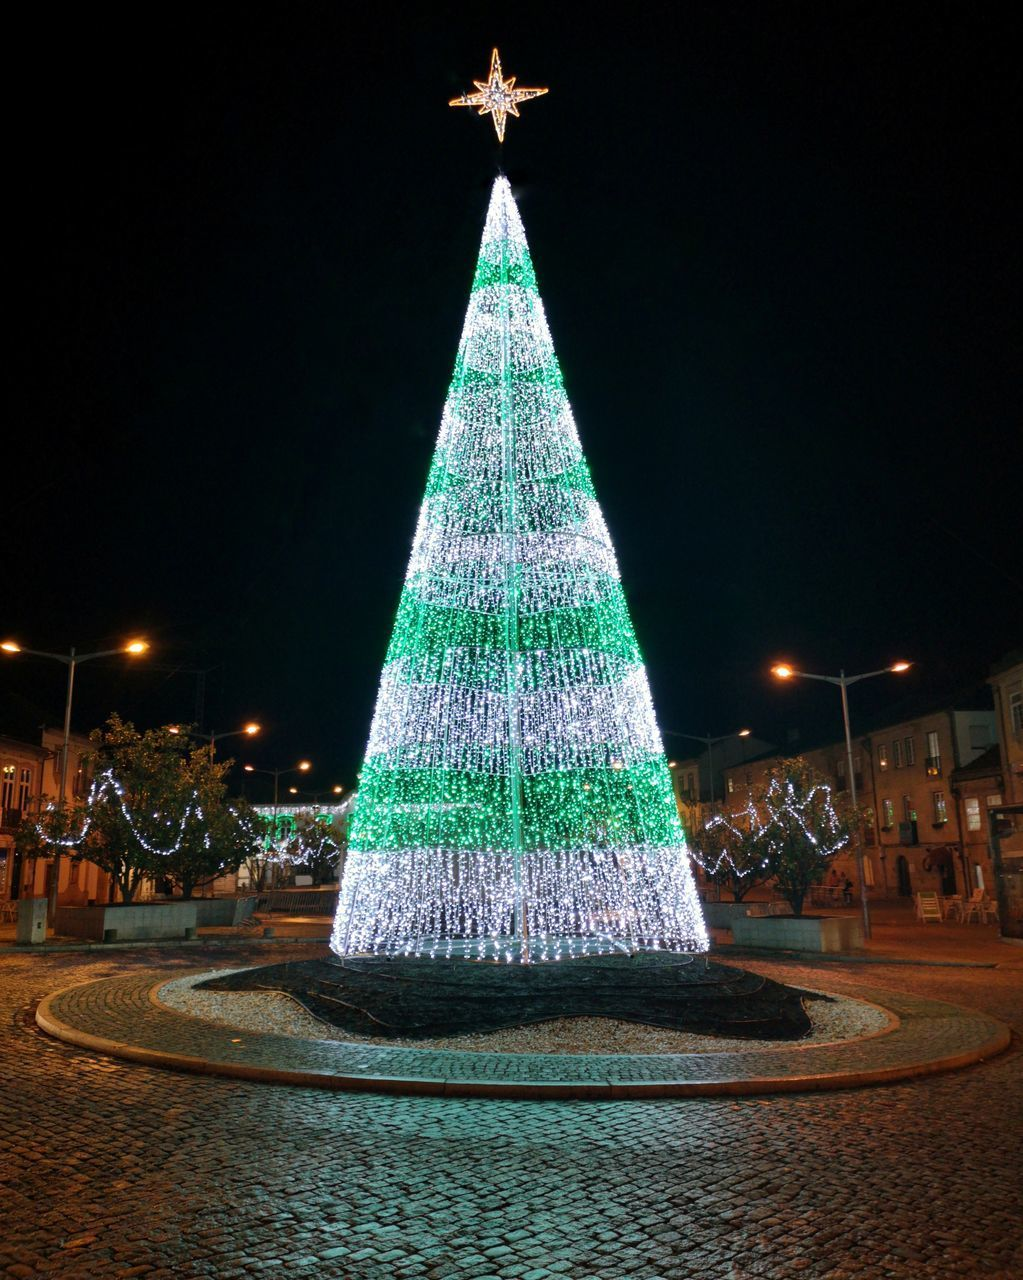 ILLUMINATED CHRISTMAS TREE AT NIGHT DURING FESTIVAL